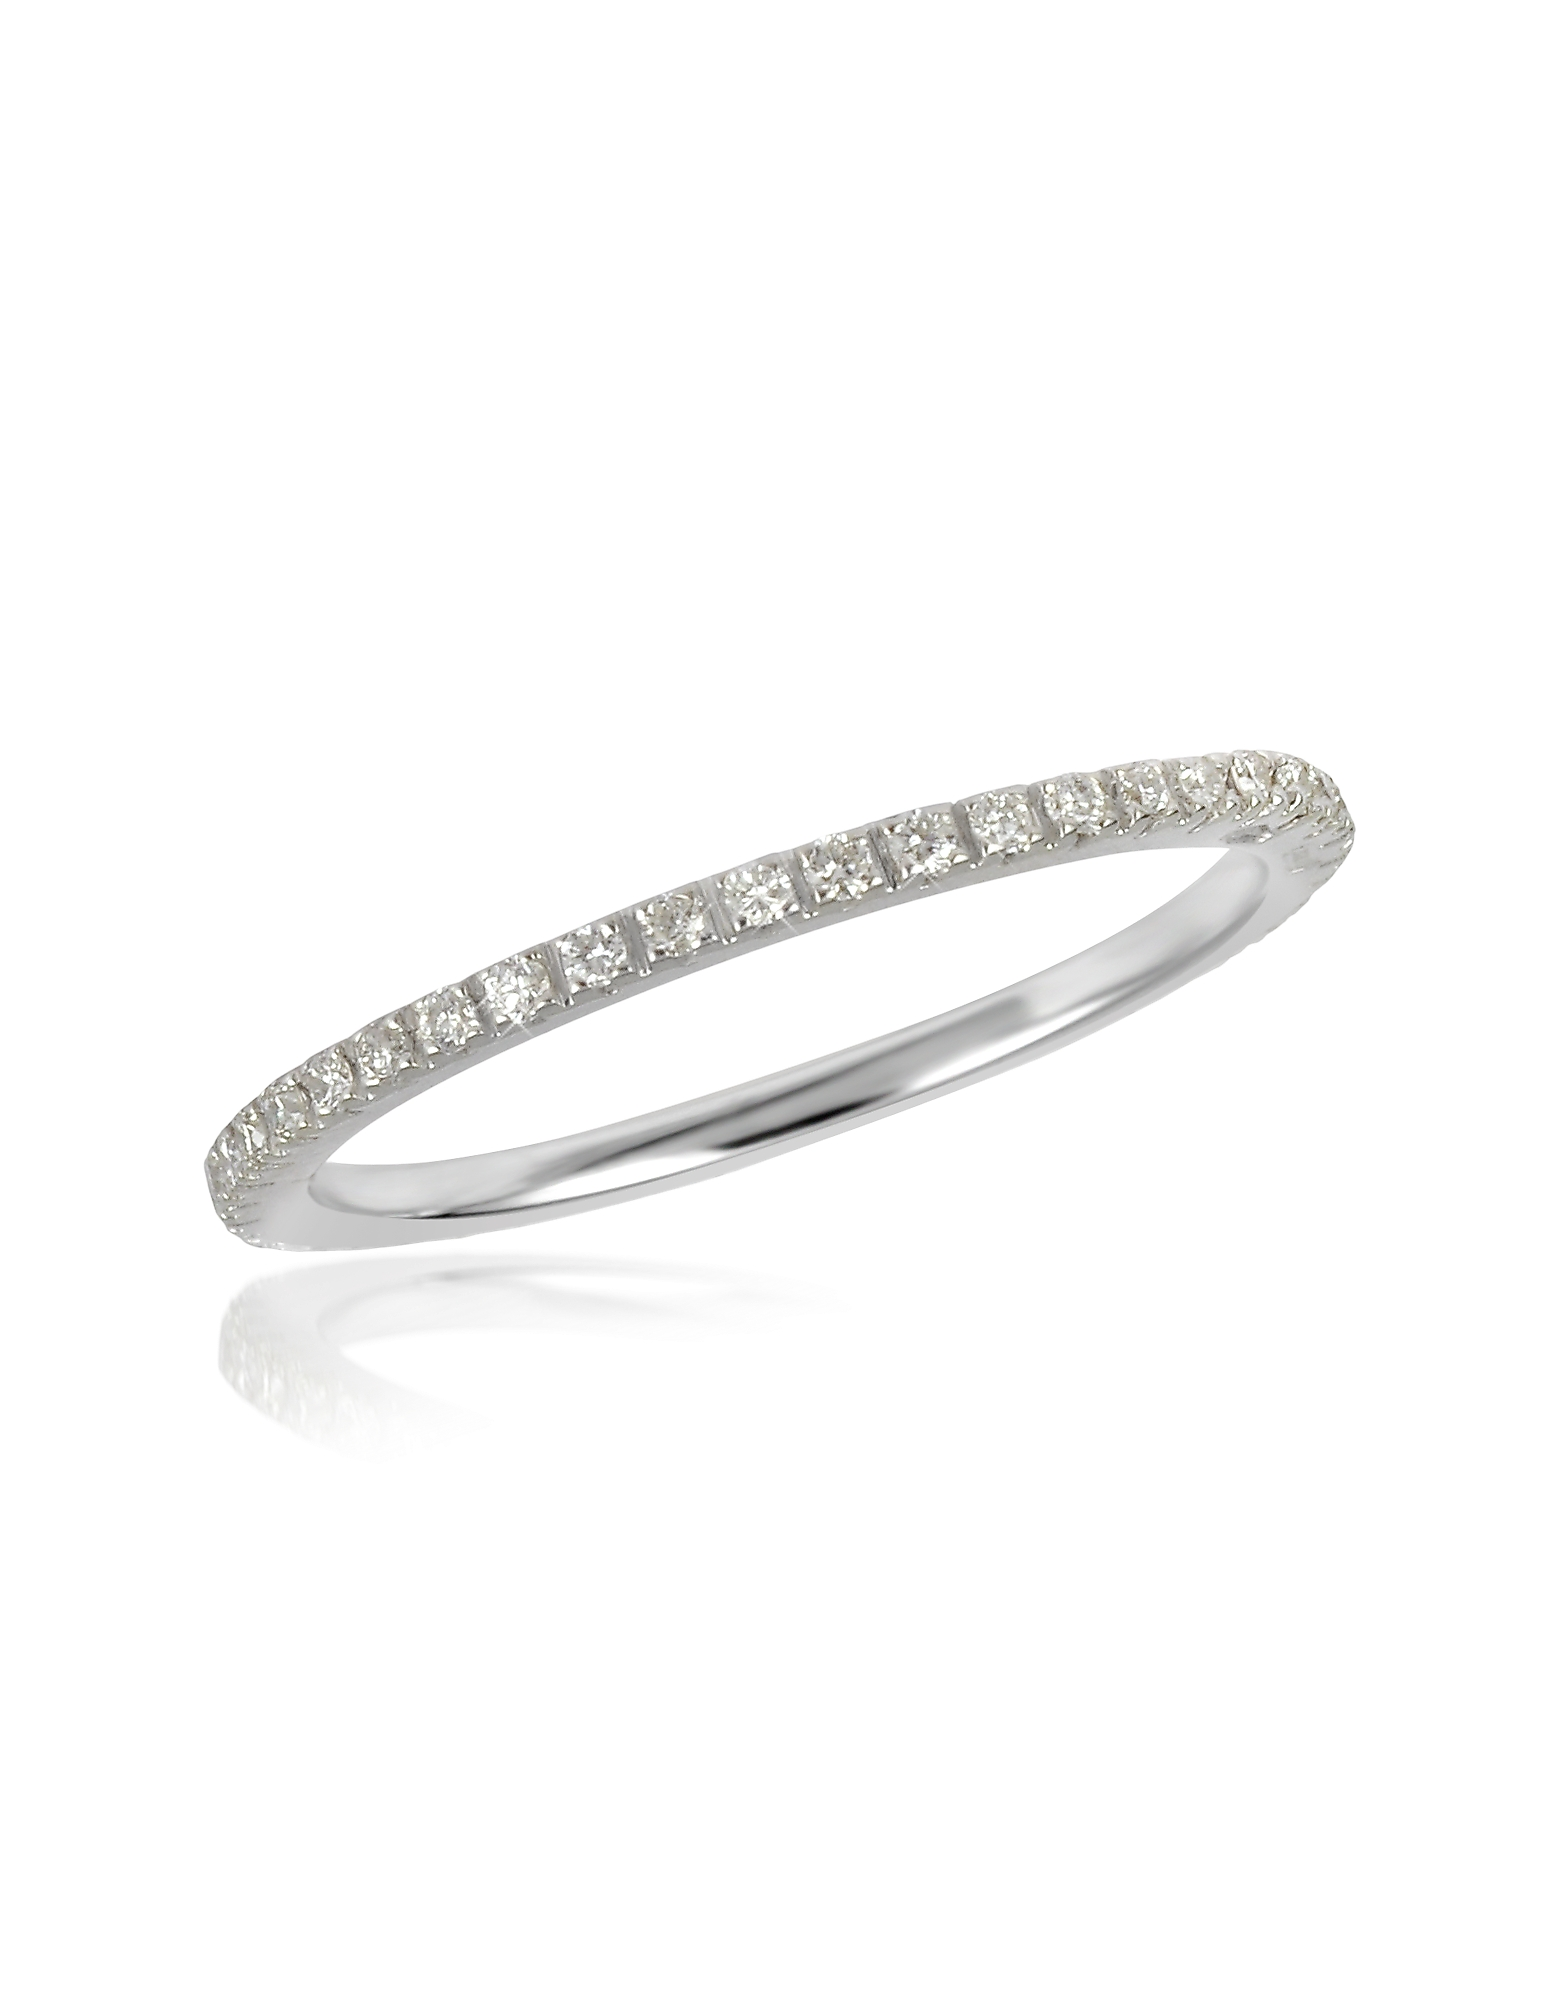 Forzieri Rings, 0.27 ctw Diamond 18K White Gold Eternity Band